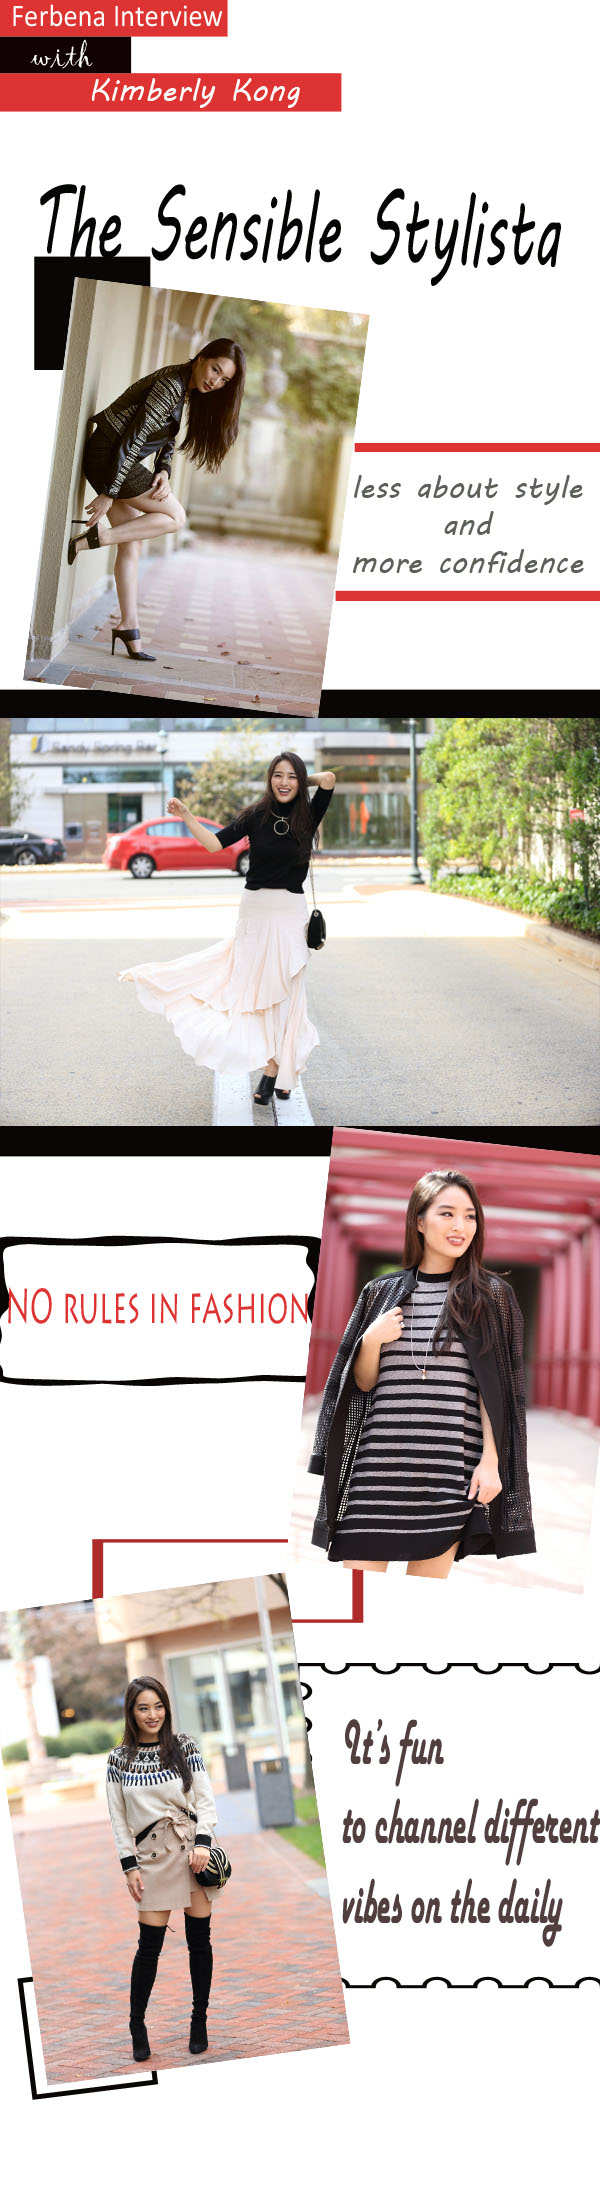 Interview with Kimberly Kong: The Sensible Stylista